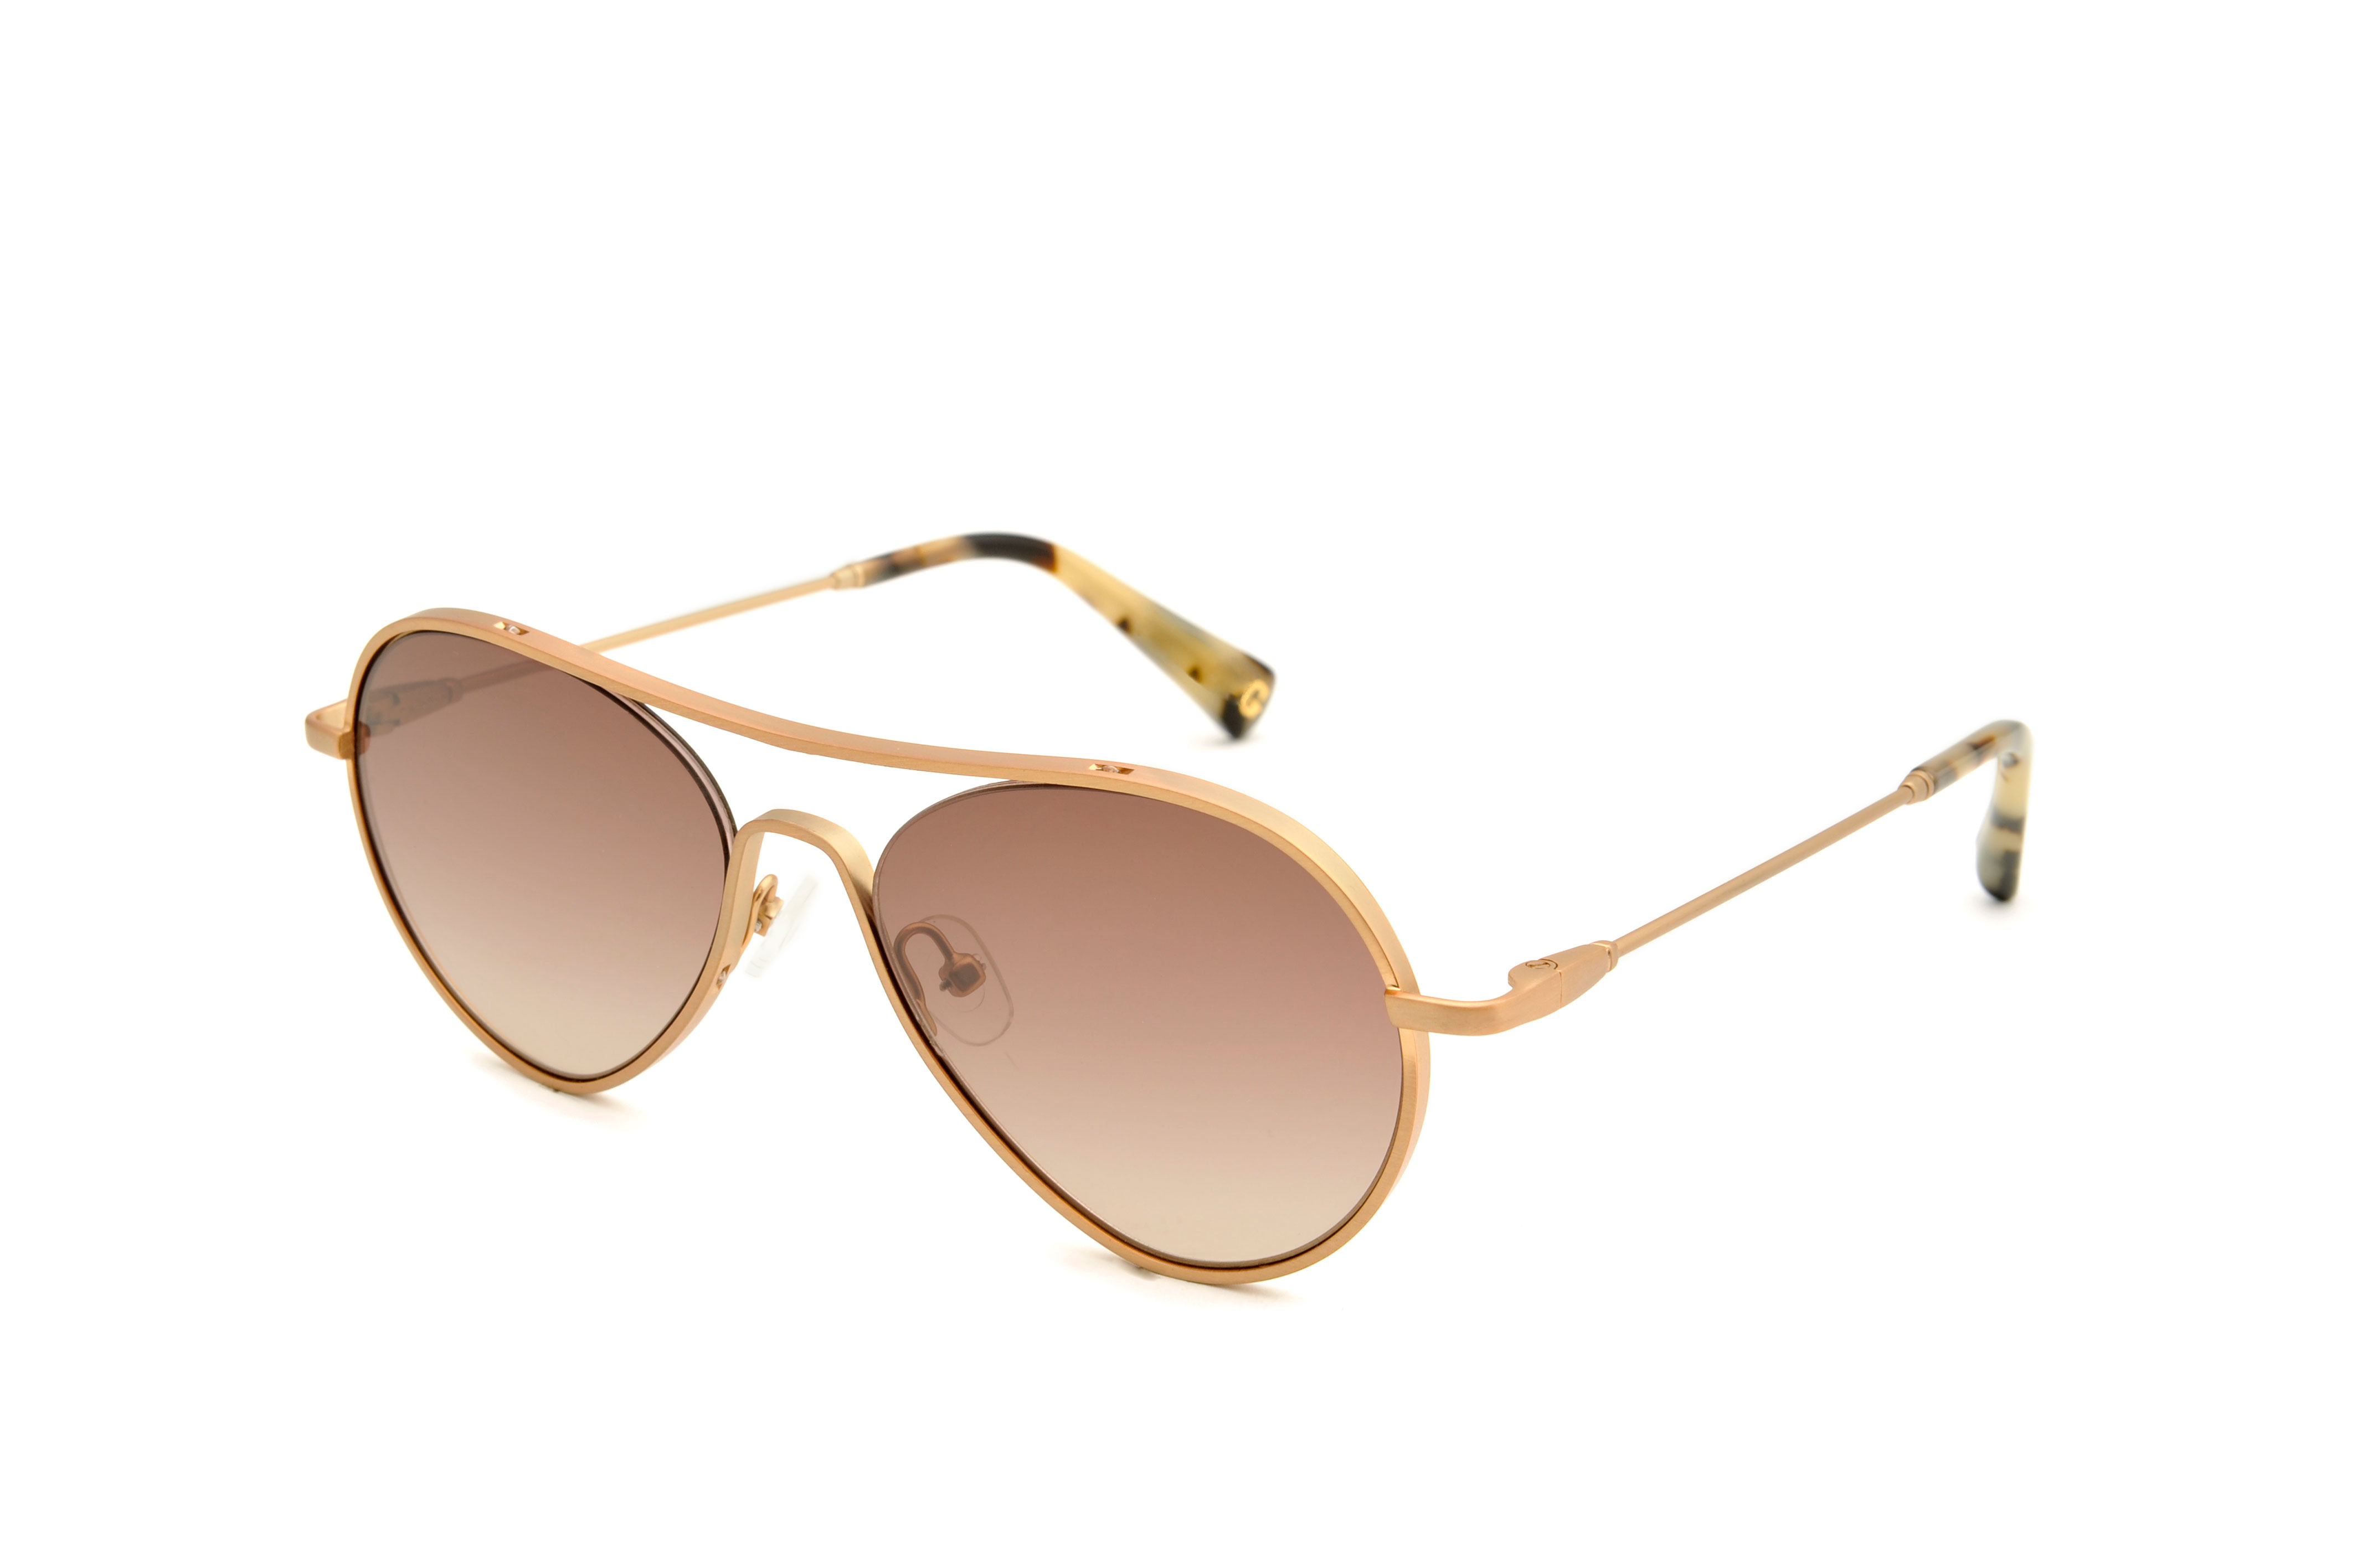 Winter metal aviator gold sunglasses by GIGI Studios